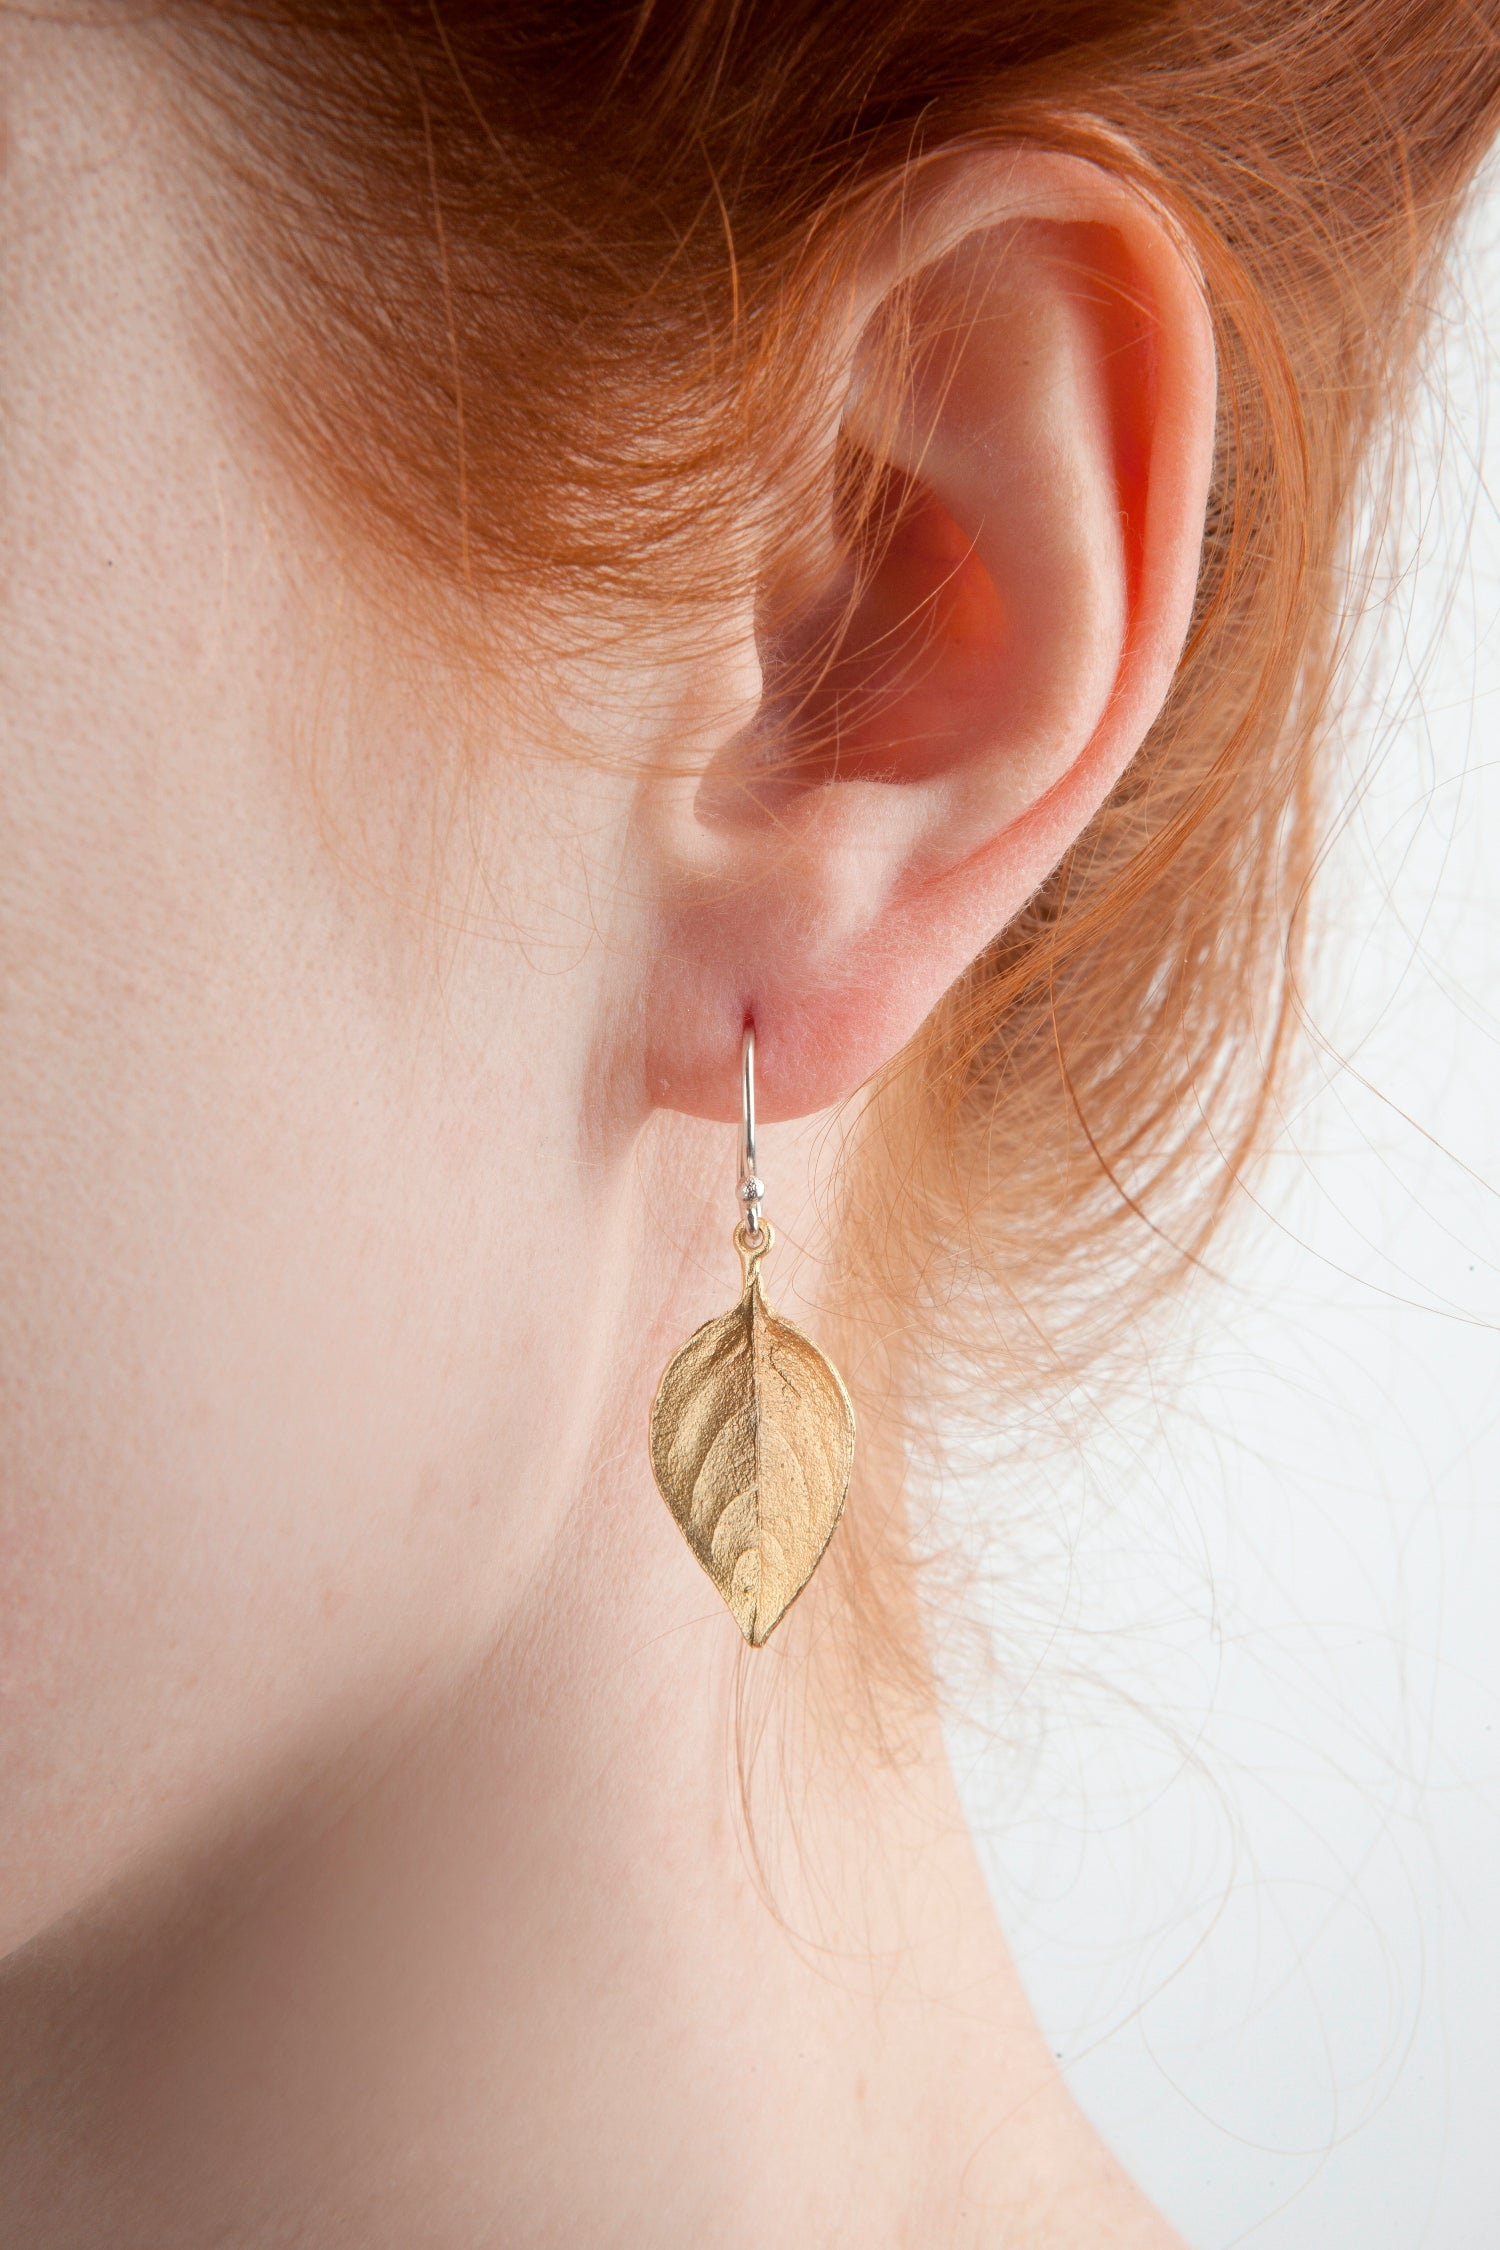 Sweet Basil Earrings - Large Gold Leaf